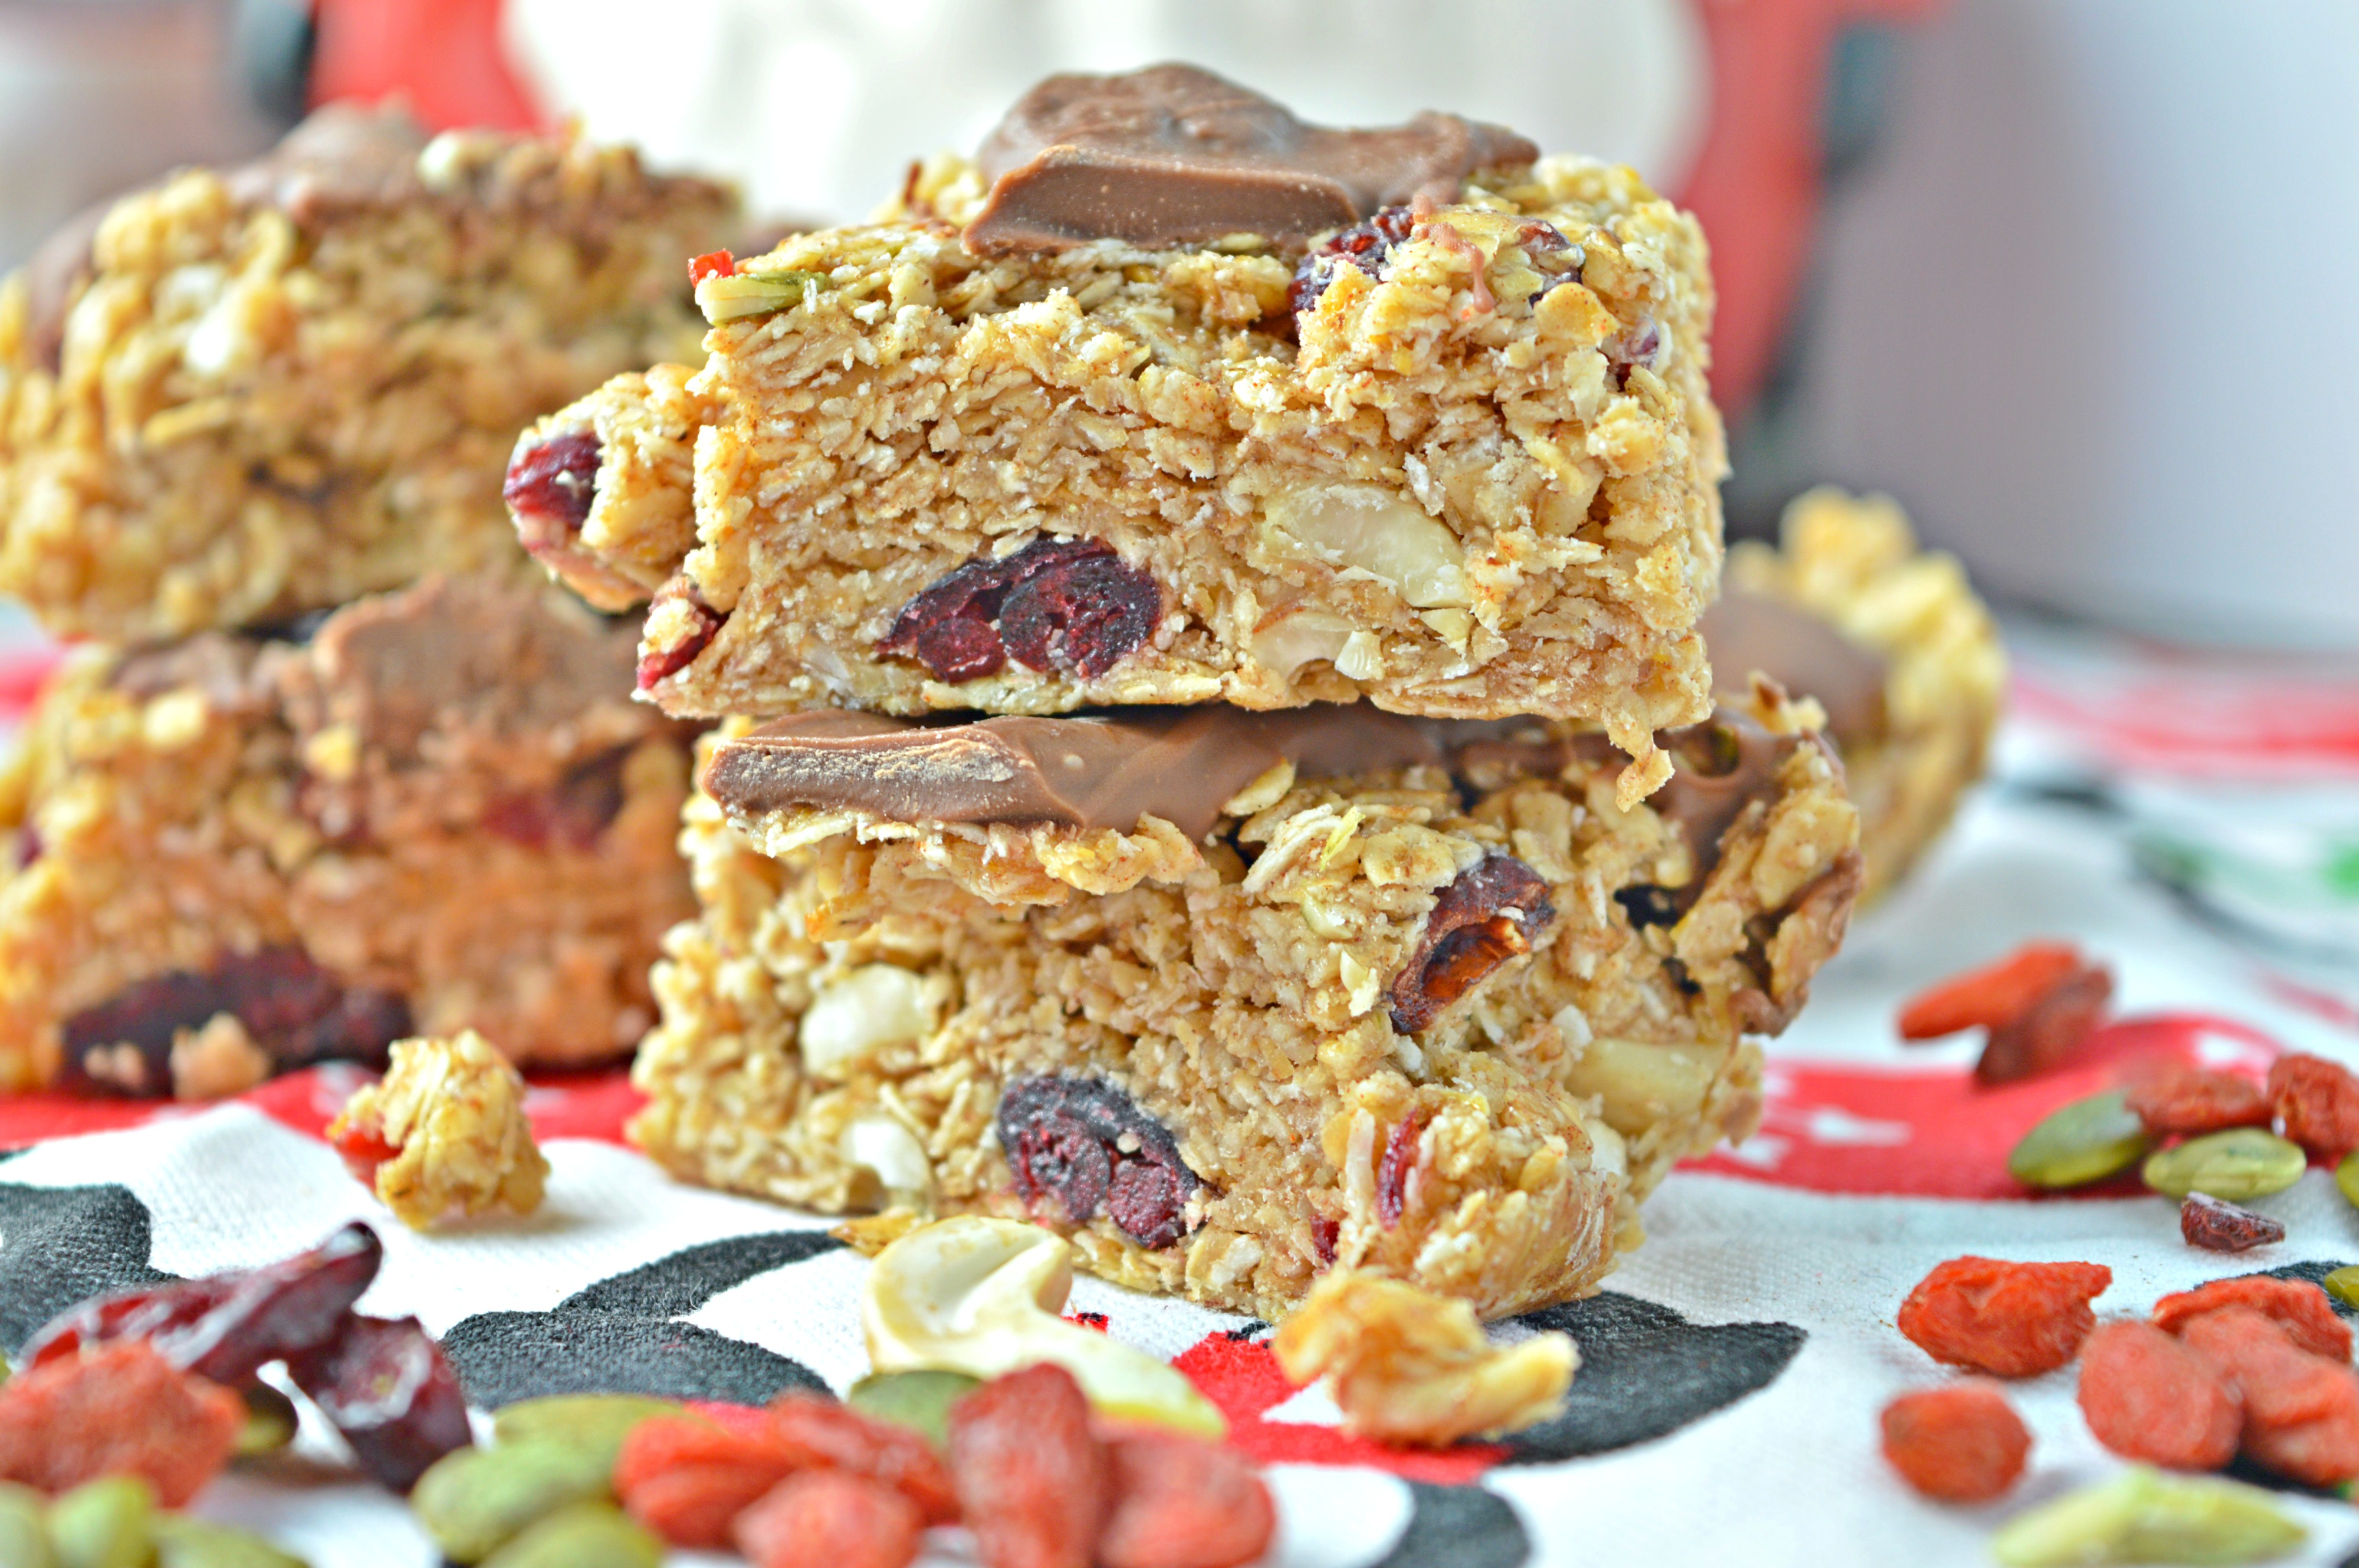 Milk Chocolate Flapjack with Goji Berry, Cranberries & Seeds